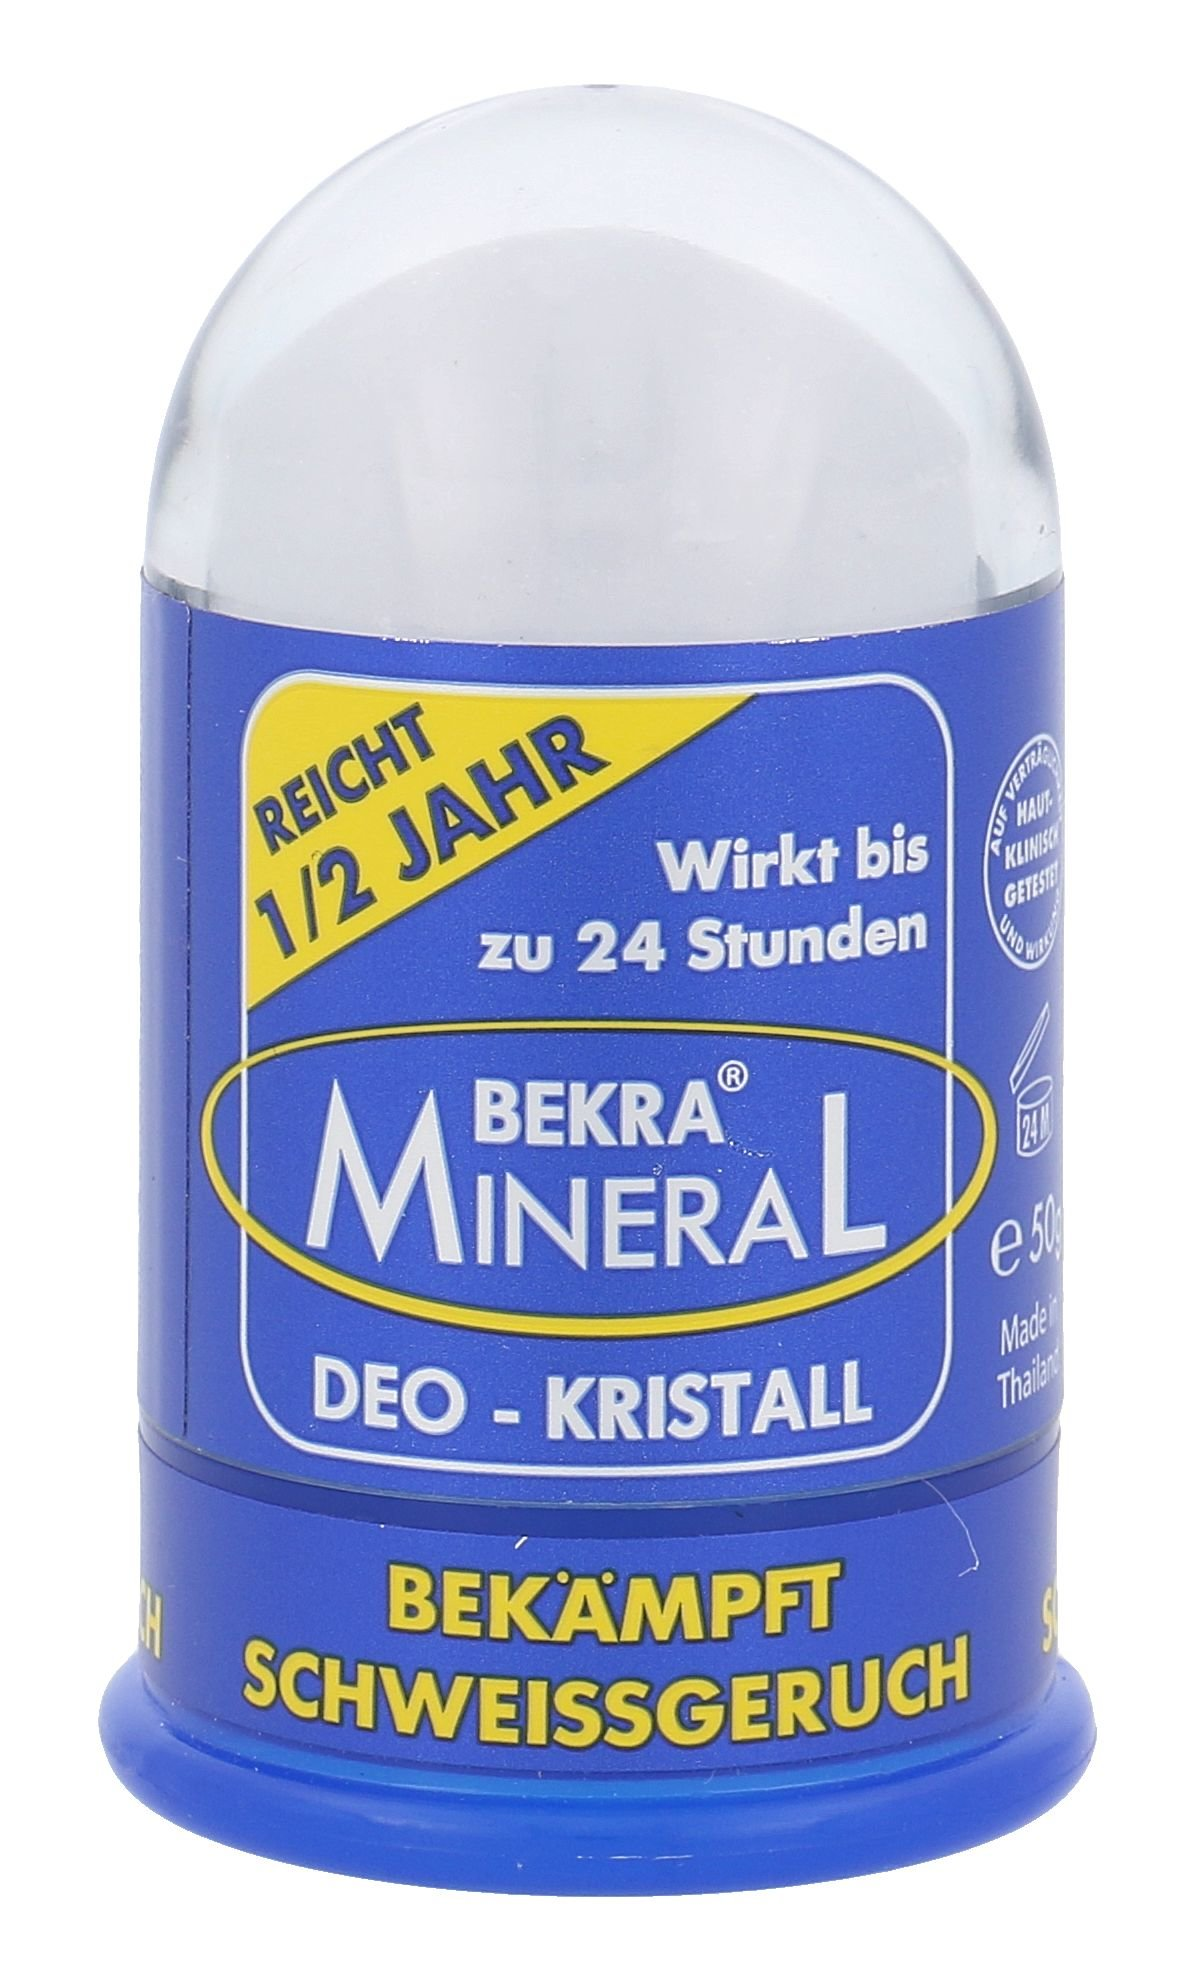 Bekra Mineral Deo-Crystal Cosmetic 50ml